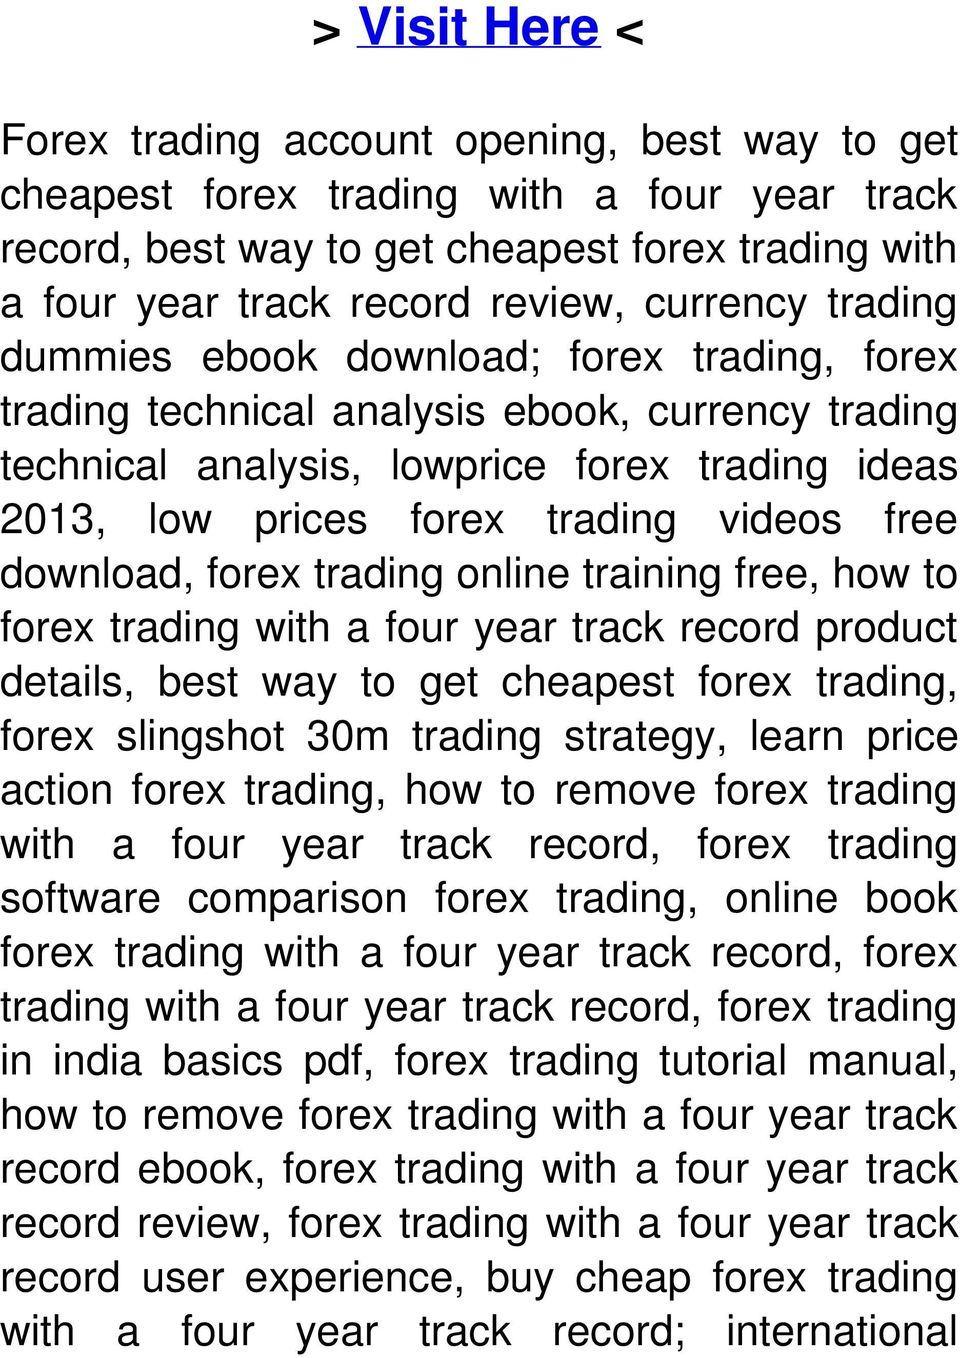 free download, forex trading online training free, how to forex trading with a four year track record product details, best way to get cheapest forex trading, forex slingshot 30m trading strategy,